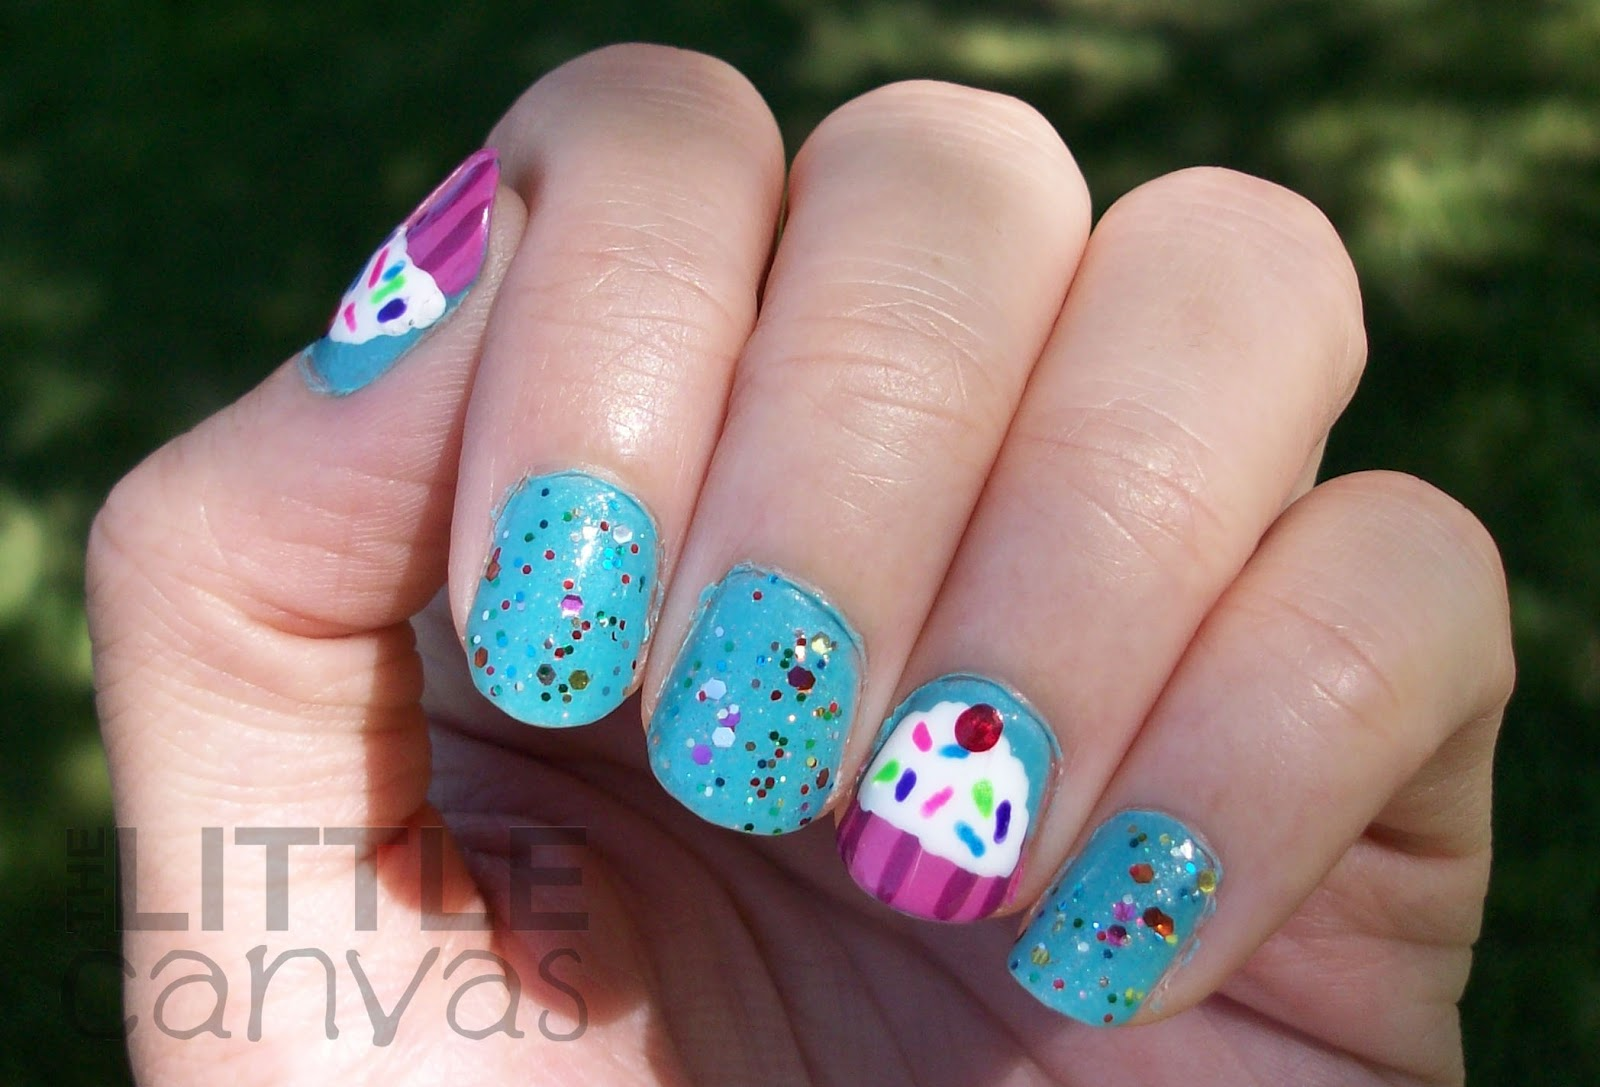 30 Awesome Cupcake Nail Art Designs 2015/16 30 Awesome Cupcake Nail Art Designs 2015/16 cupcake nail art design 4